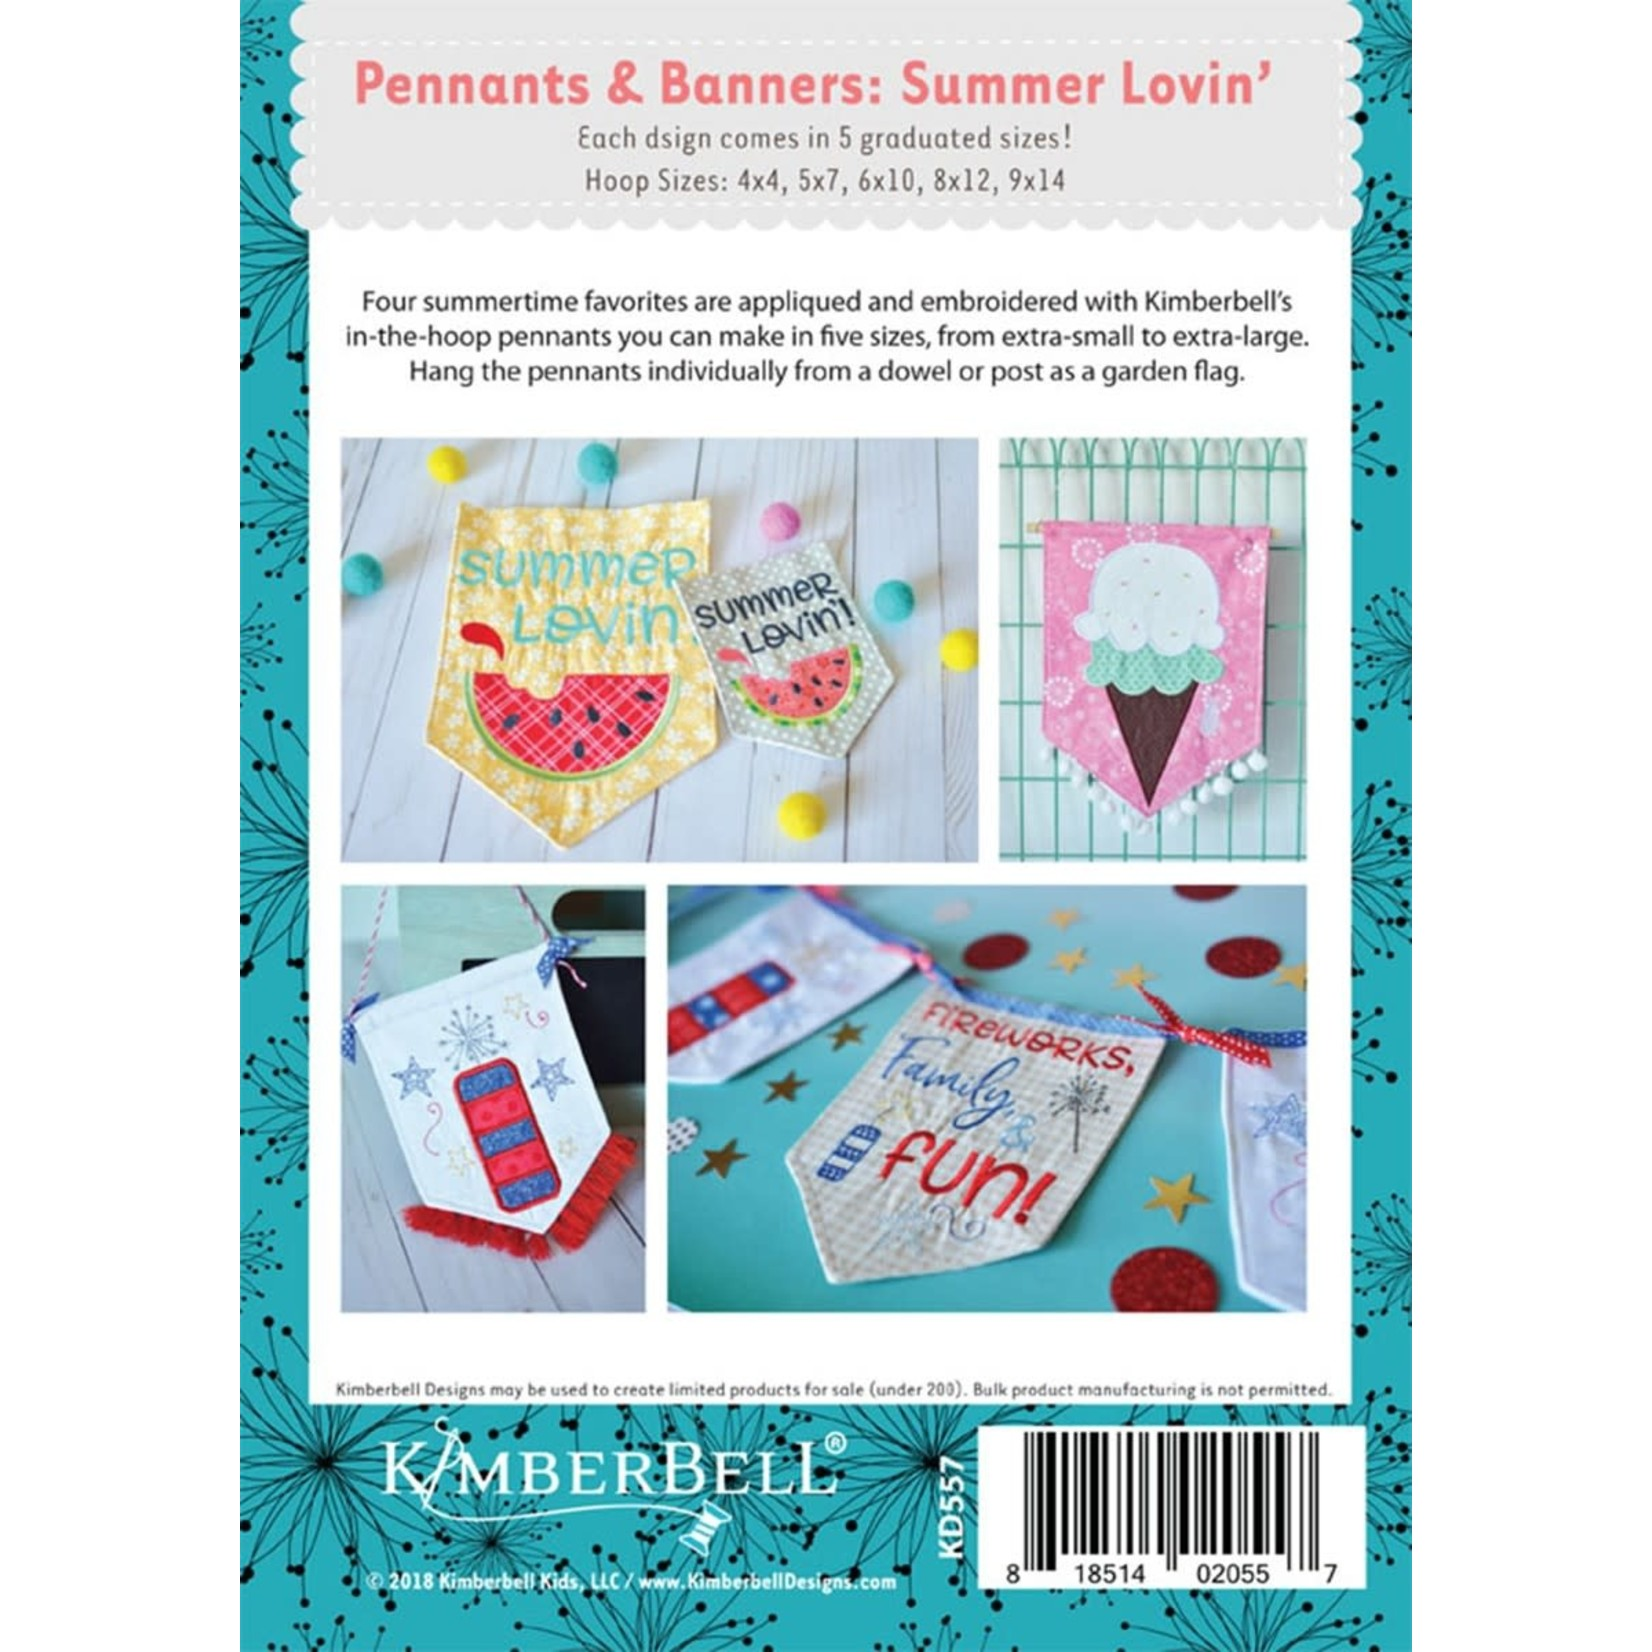 KIMBERBELL DESIGNS Pennants & Banners: Summer Lovin' Machine Embroidery CD